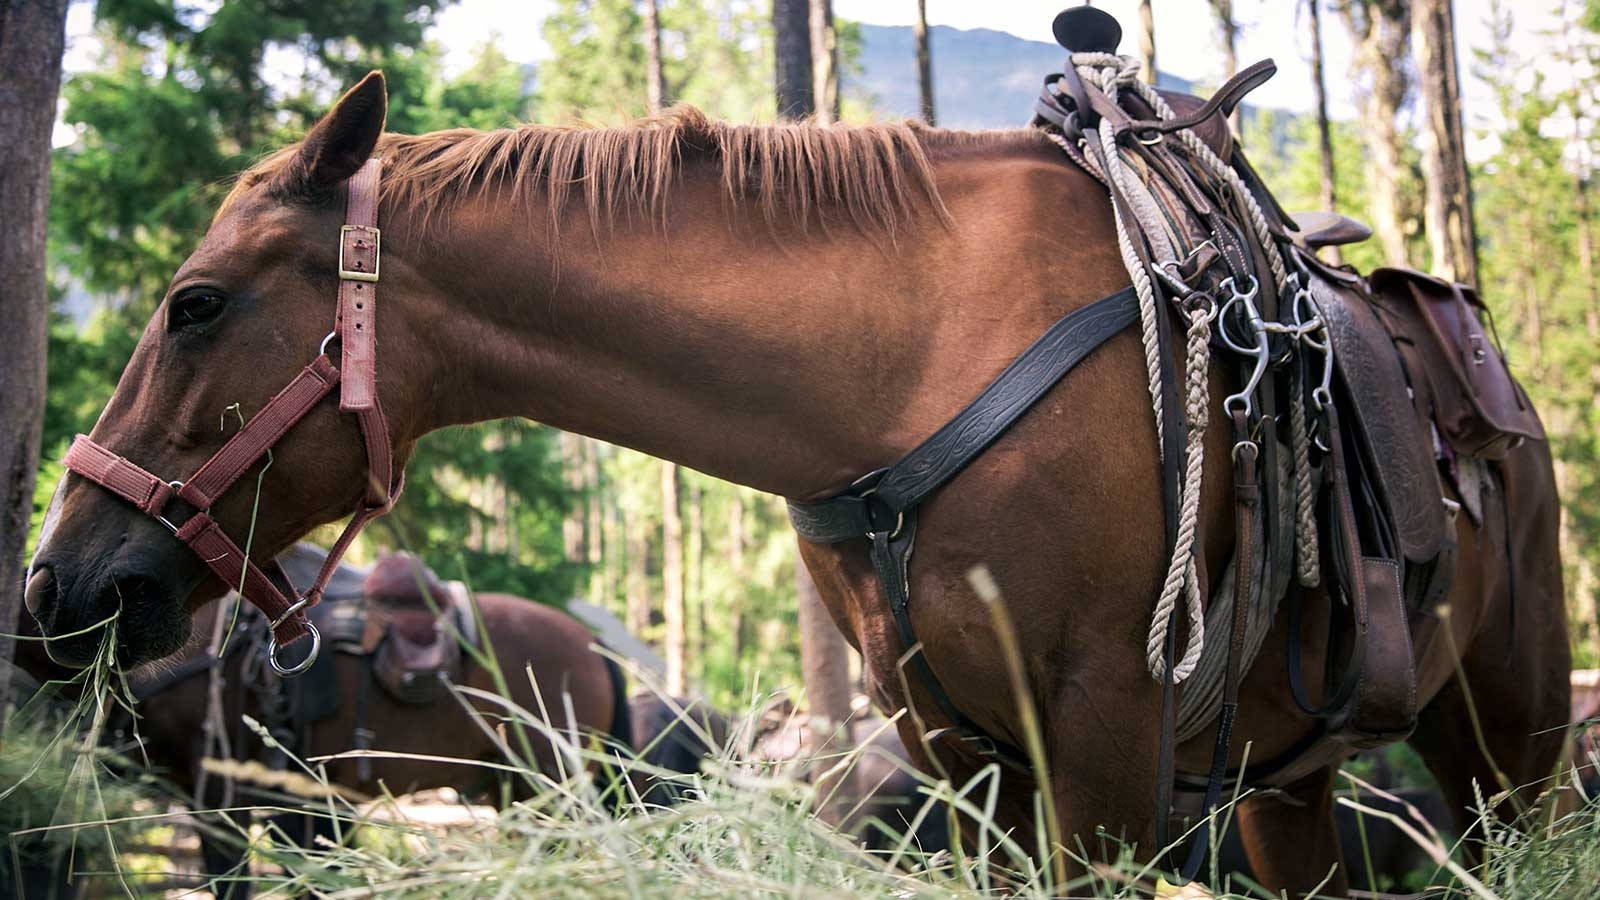 Horse with cowboy saddle eating hay with mountains in background